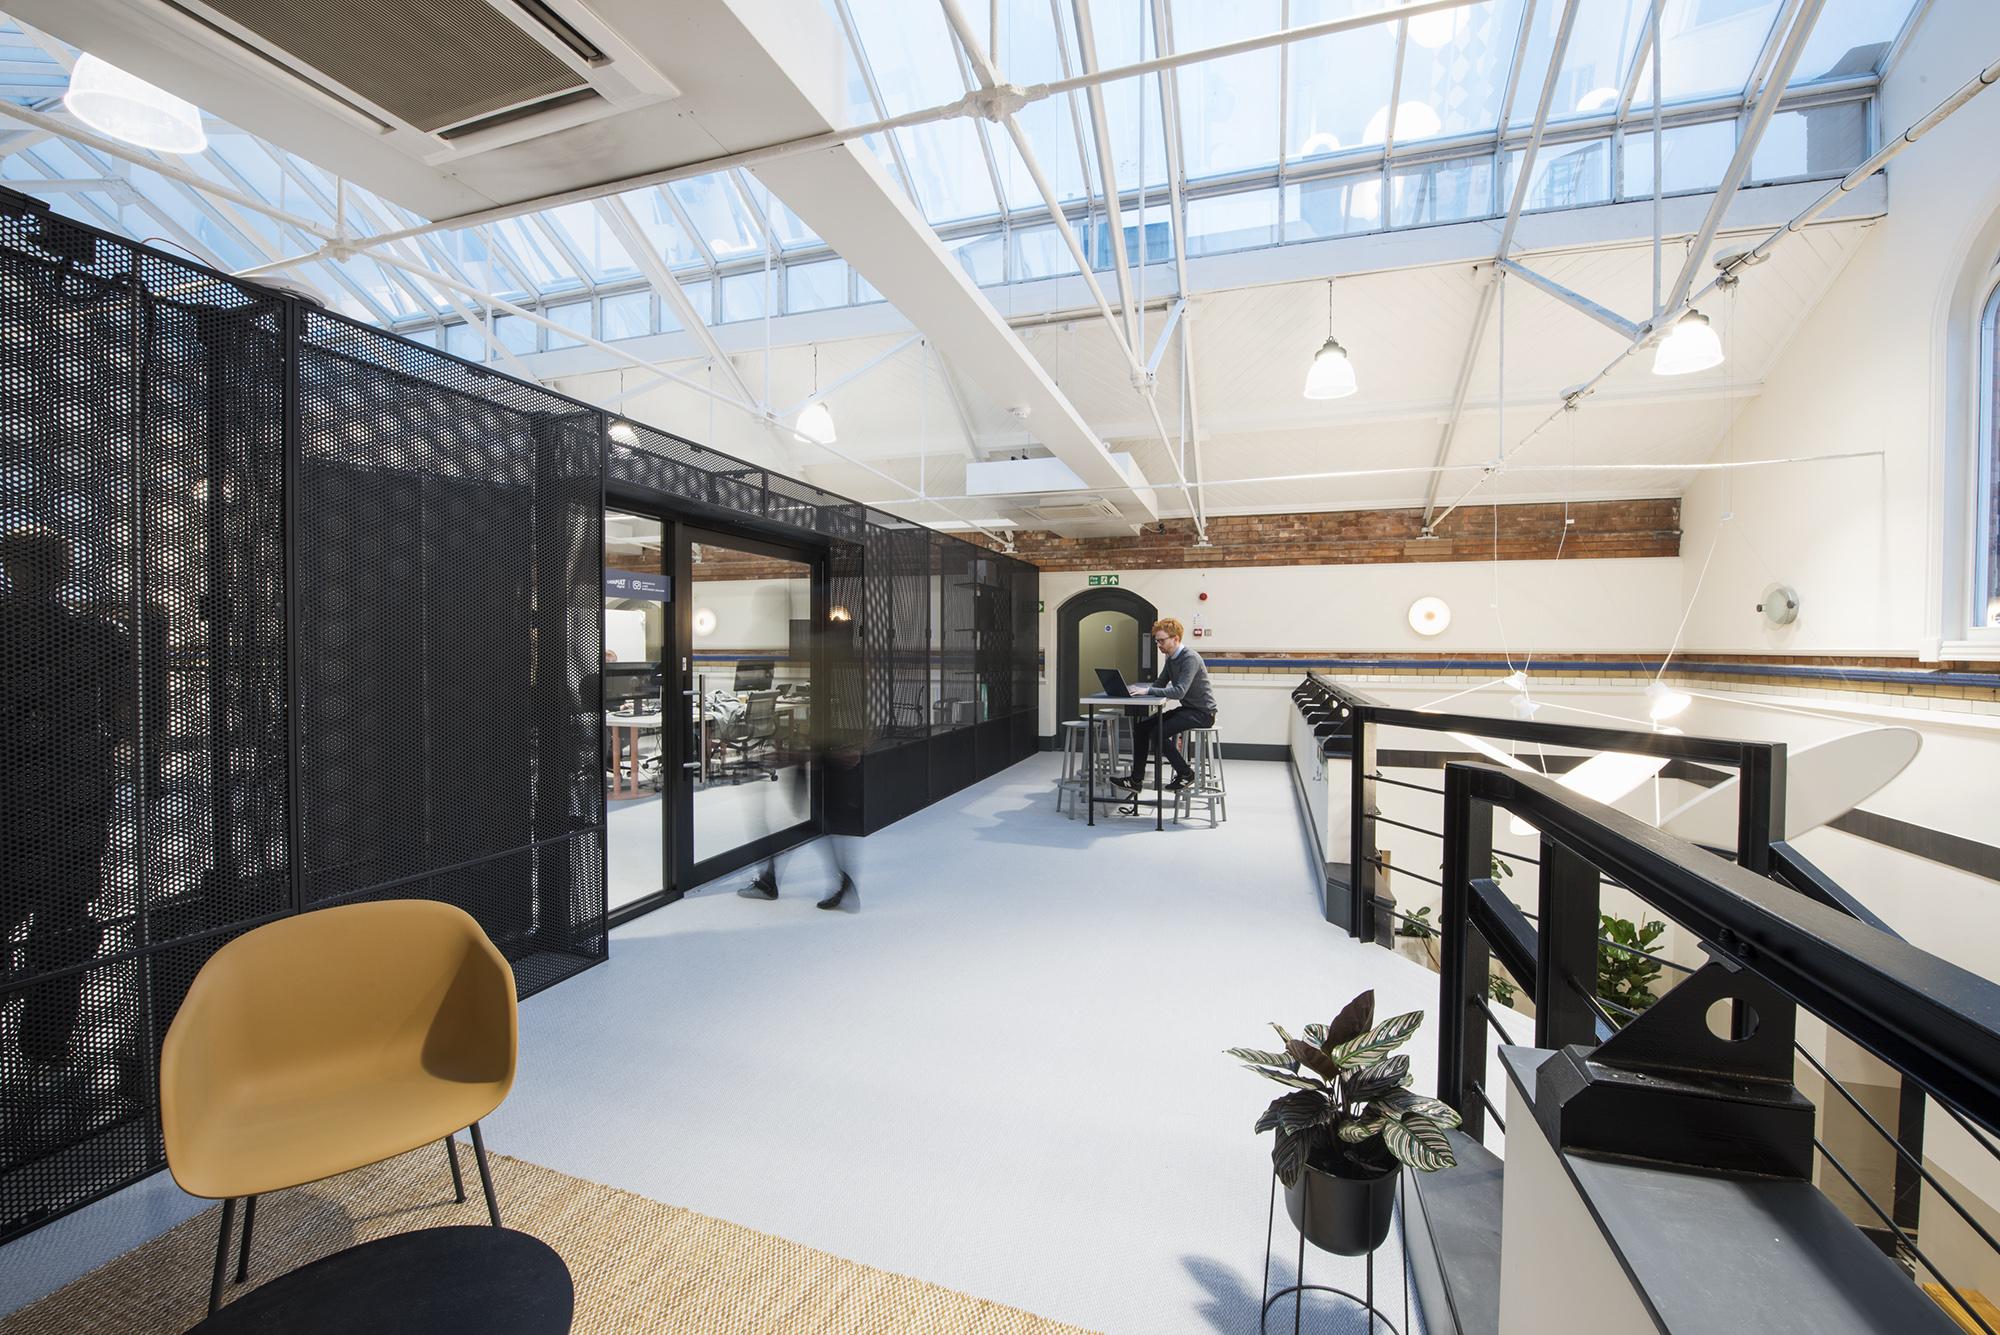 Kadence have moved into Belfast's historic Ormeau Baths building.